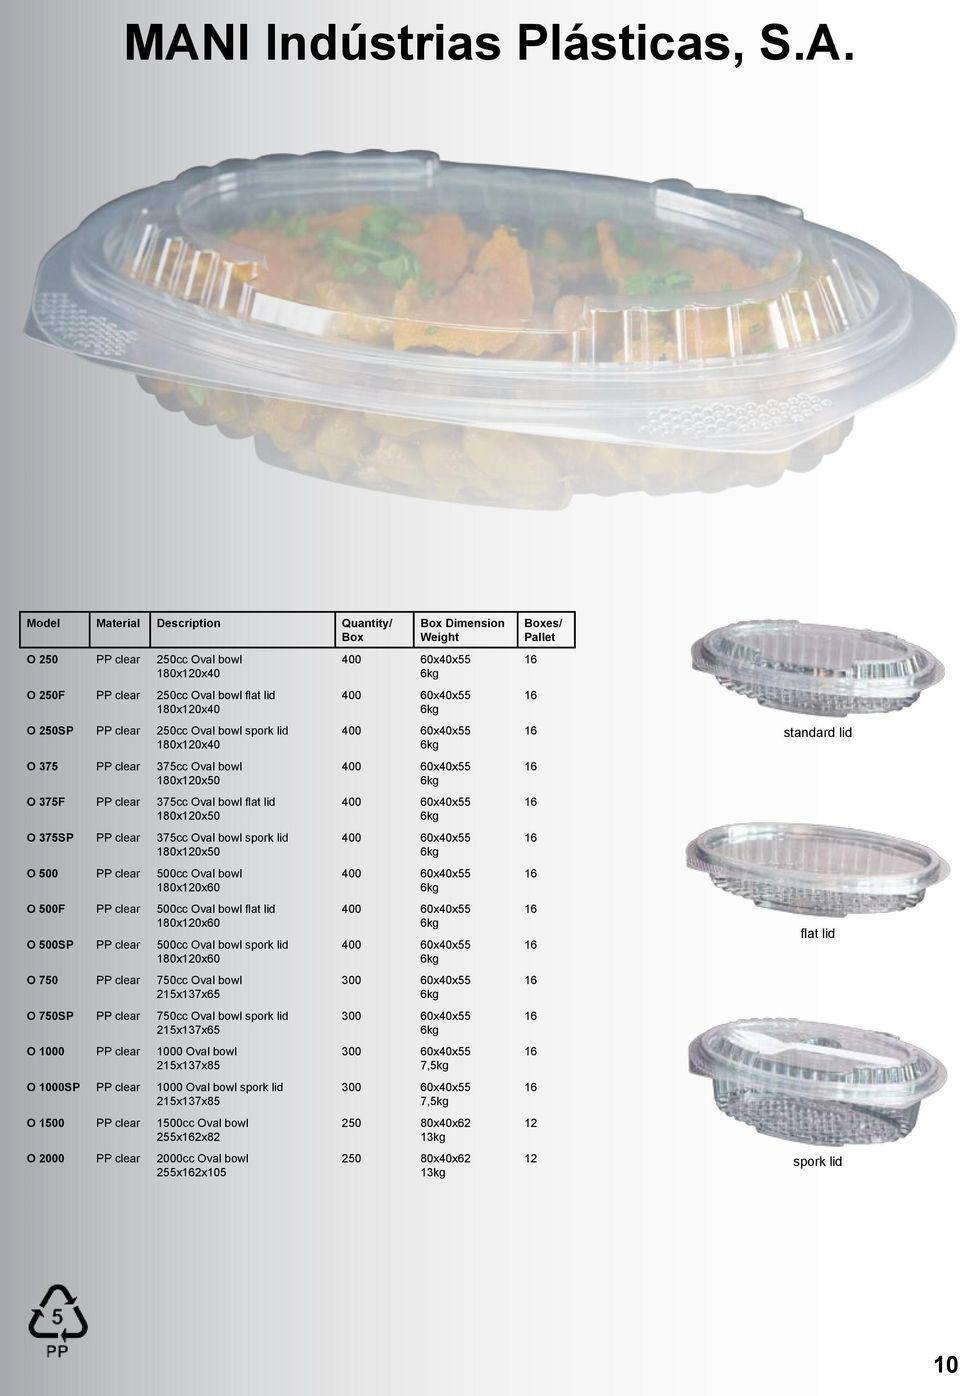 PP clear 500cc Oval bowl flat lid 180x0x60 O 500SP PP clear 500cc Oval bowl spork lid 180x0x60 O 750 PP clear 750cc Oval bowl 215x137x65 O 750SP PP clear 750cc Oval bowl spork lid 215x137x65 O 1000